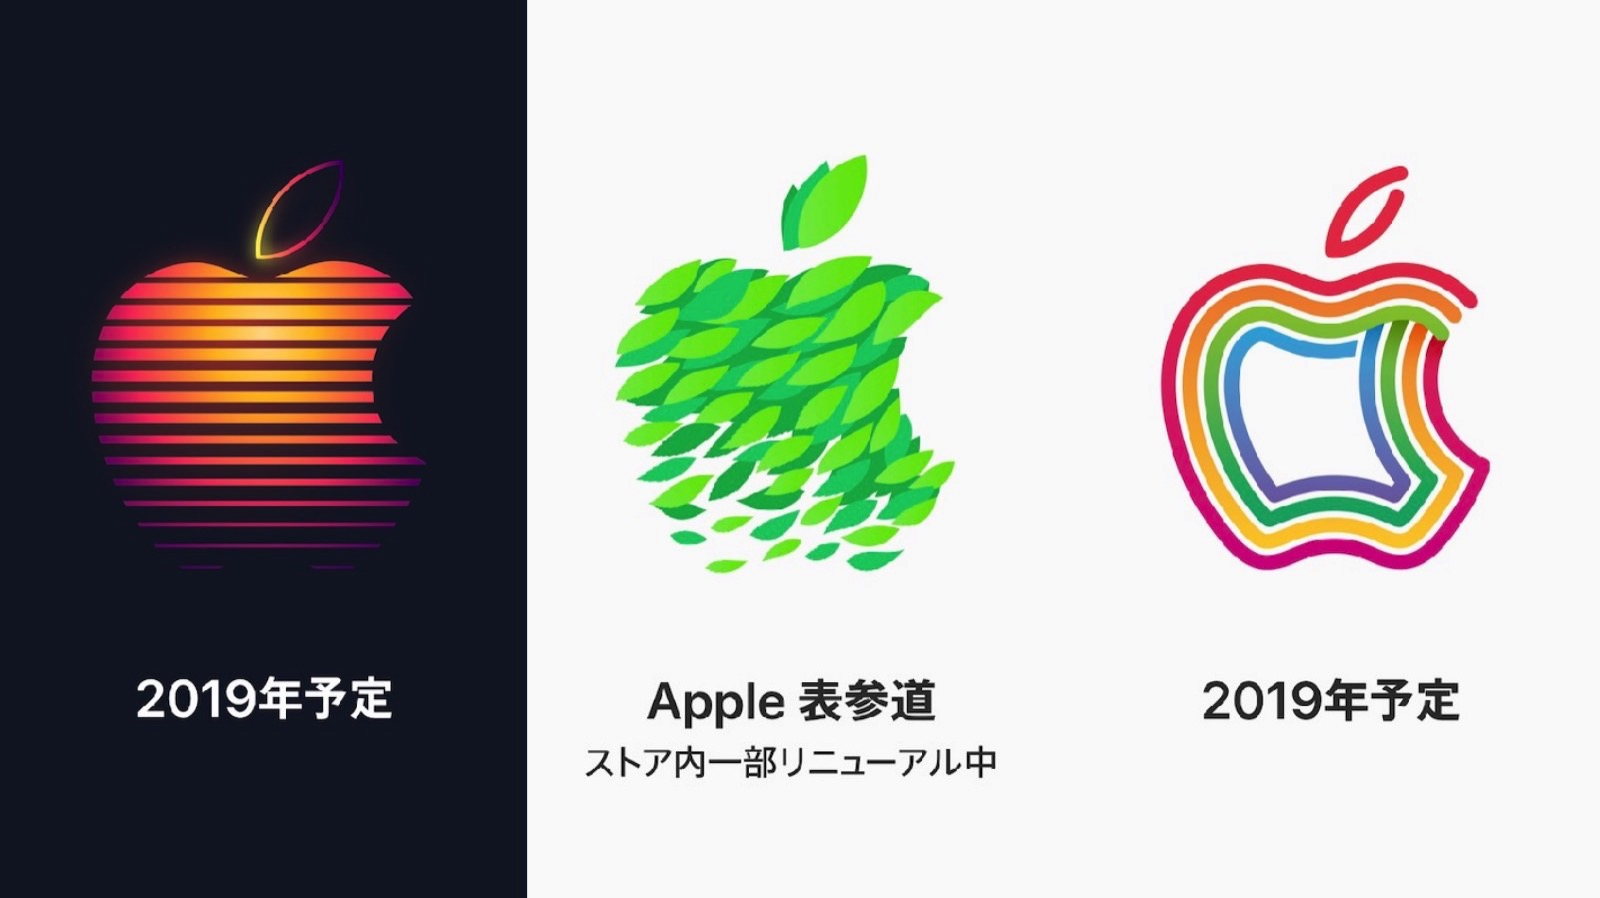 New AppleStores Coming to Japan 2019